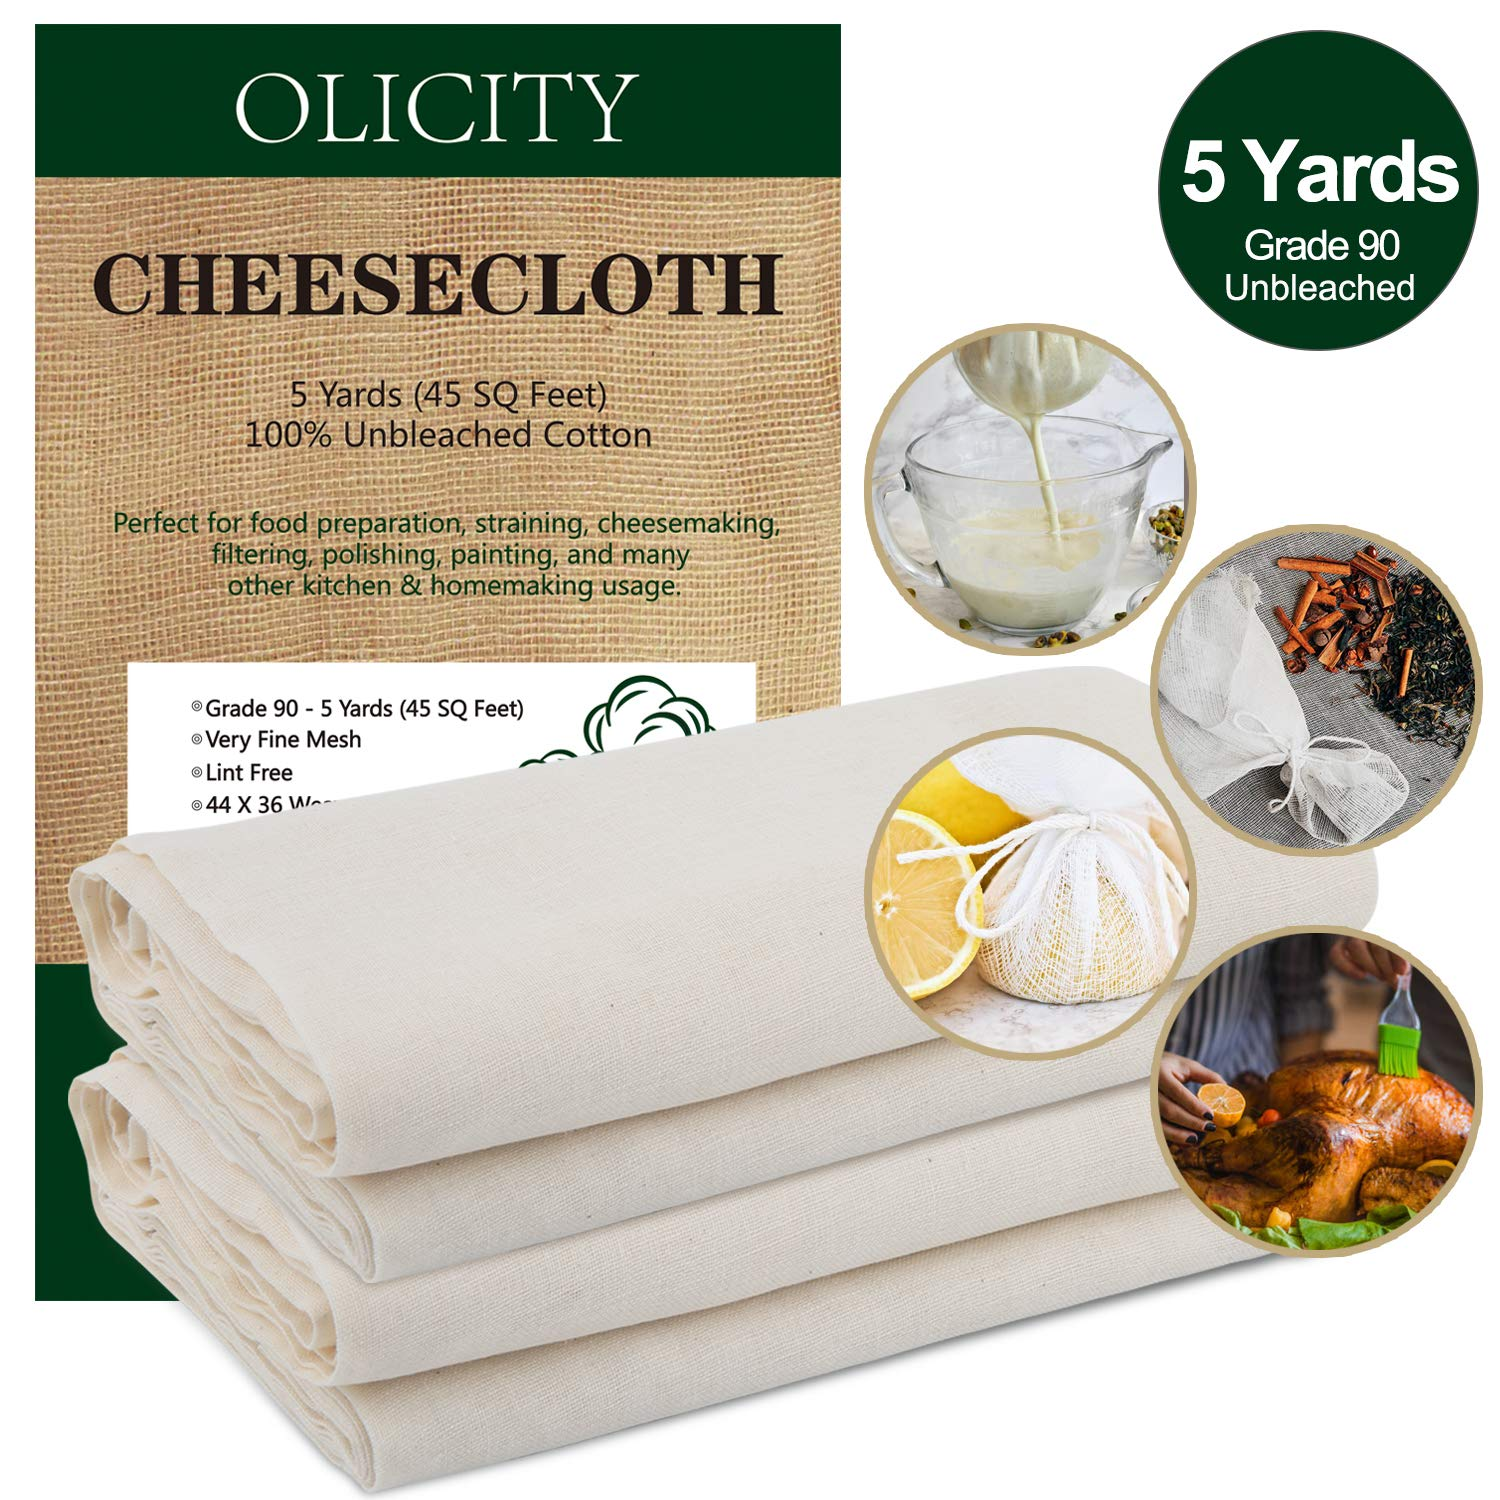 Olicity Cheesecloth, Grade 90, 45 Square Feet, 100% Unbleached Cotton Fabric Ultra Fine Muslin Cloths for Butter, Cooking, Strainer, Baking, Hallowmas Decorations (5 Yards) …